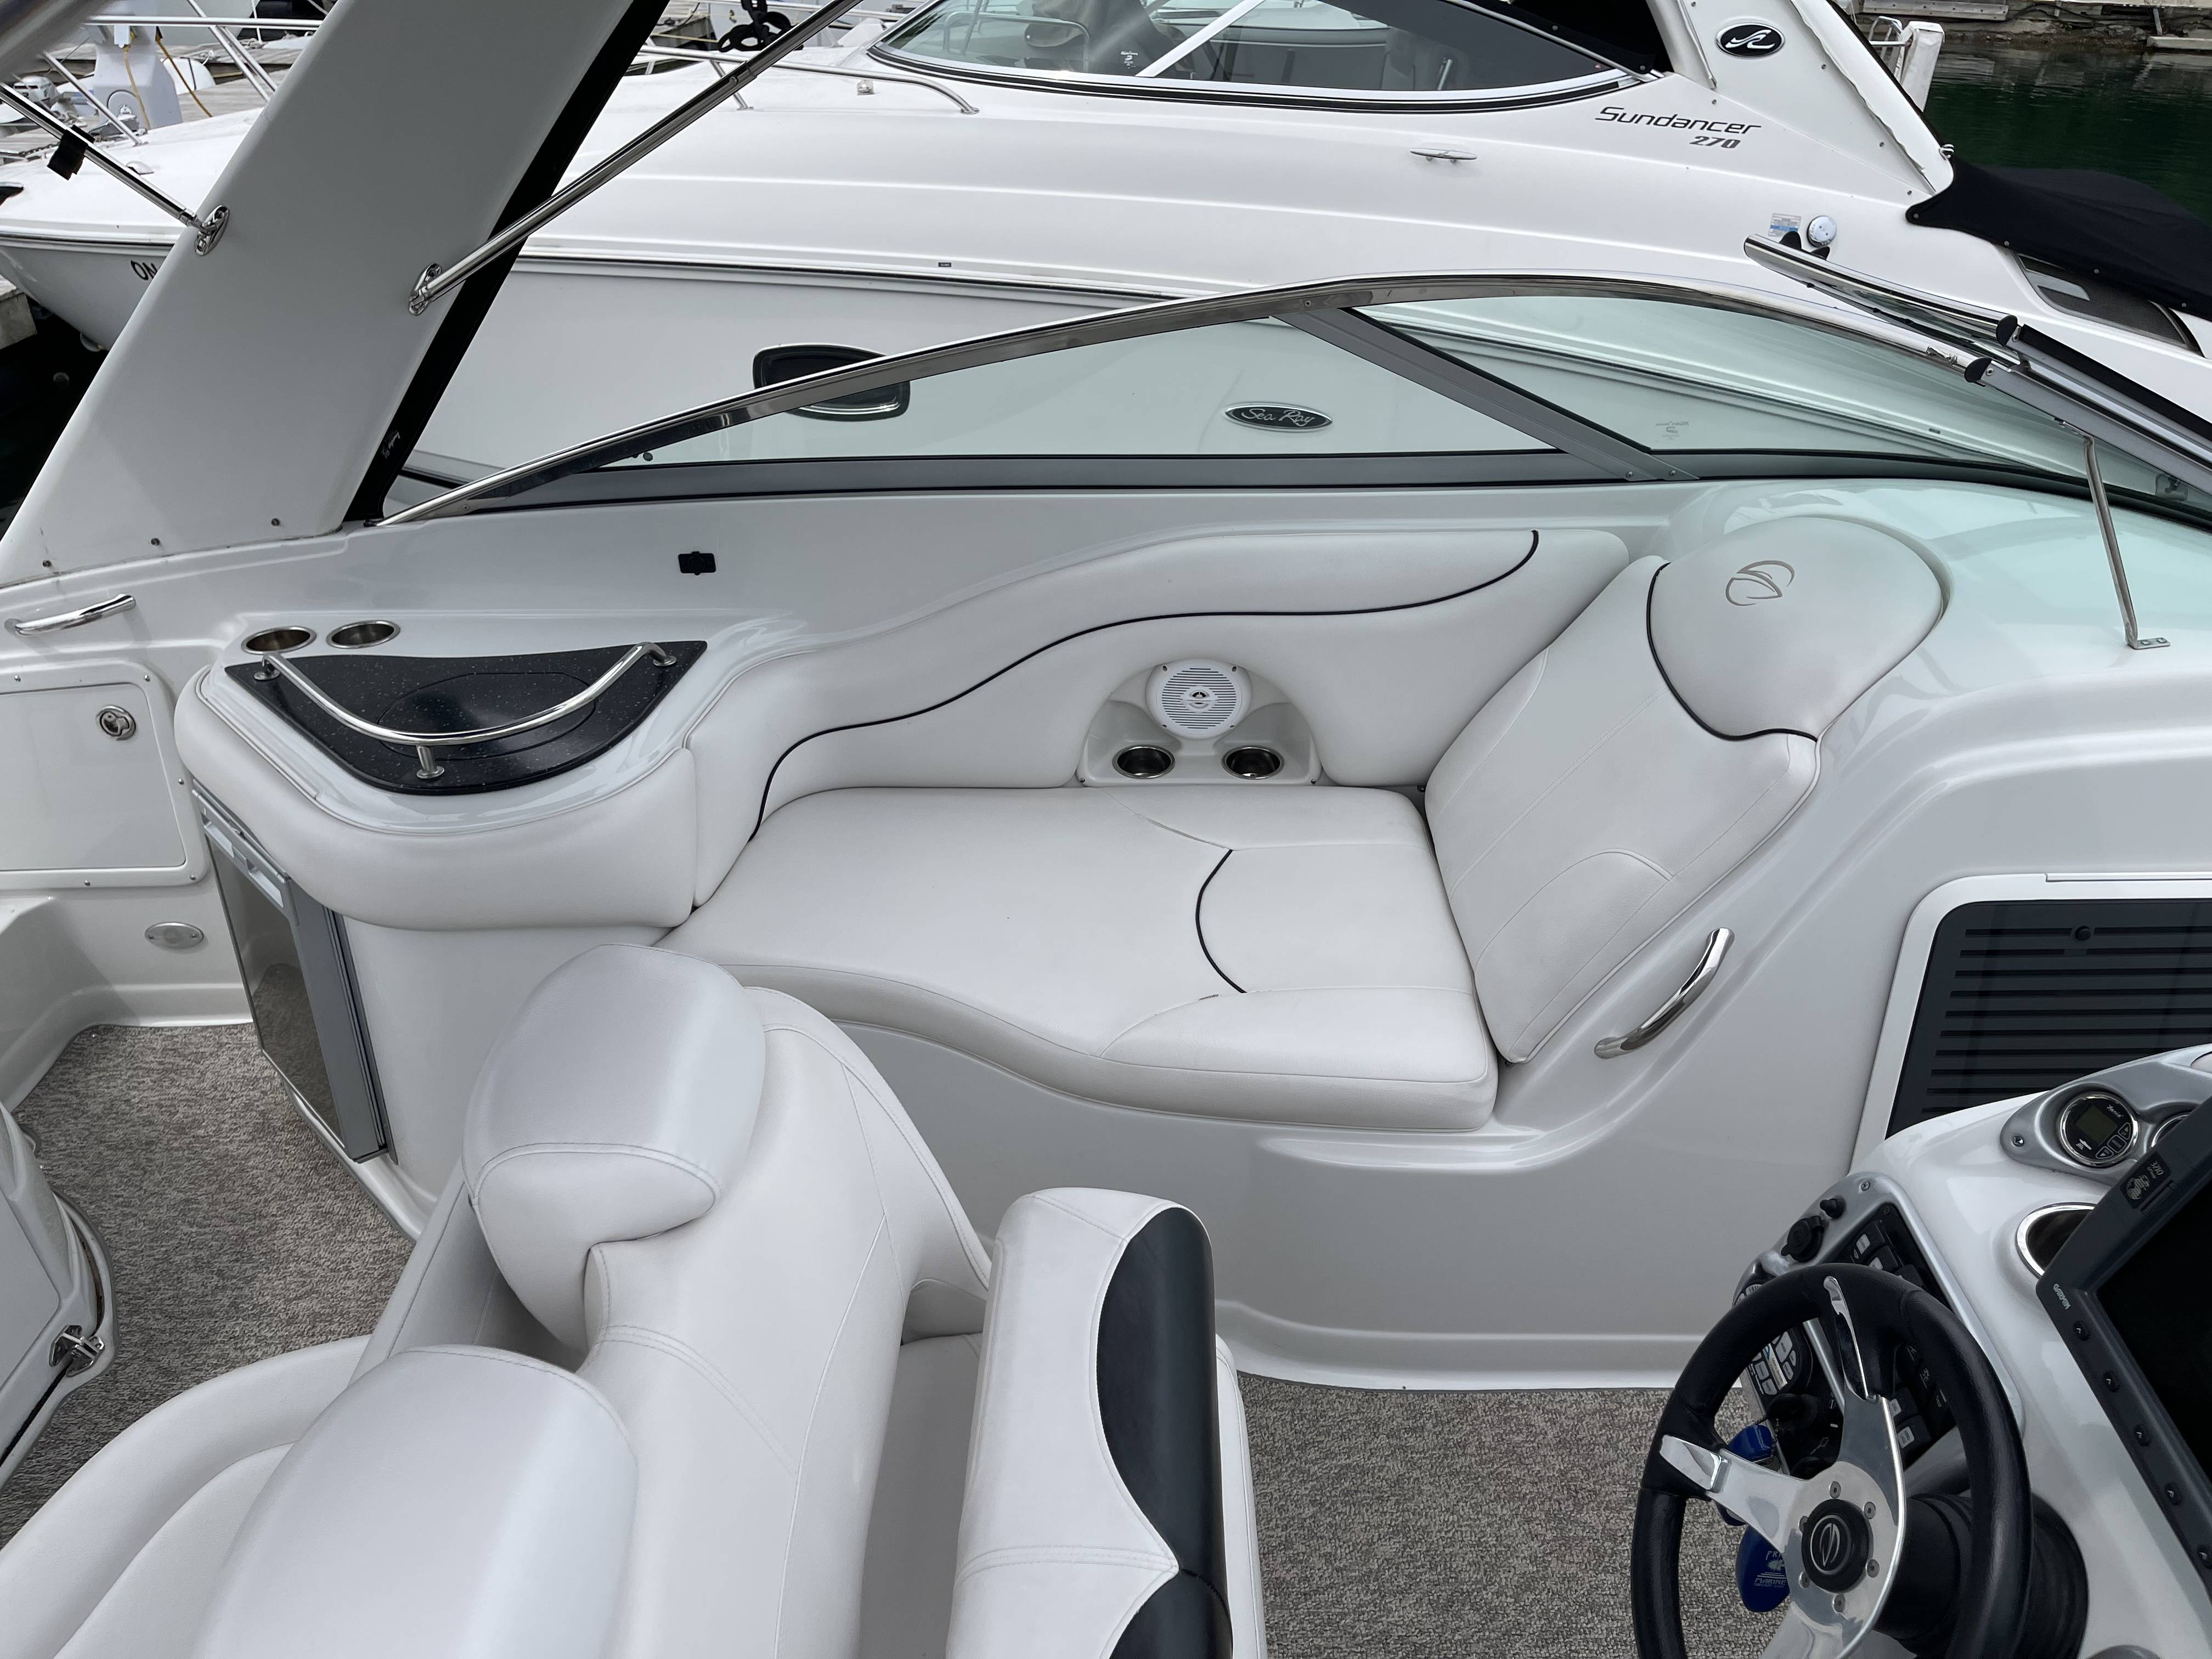 2011 Crownline boat for sale, model of the boat is 320 LS & Image # 24 of 55